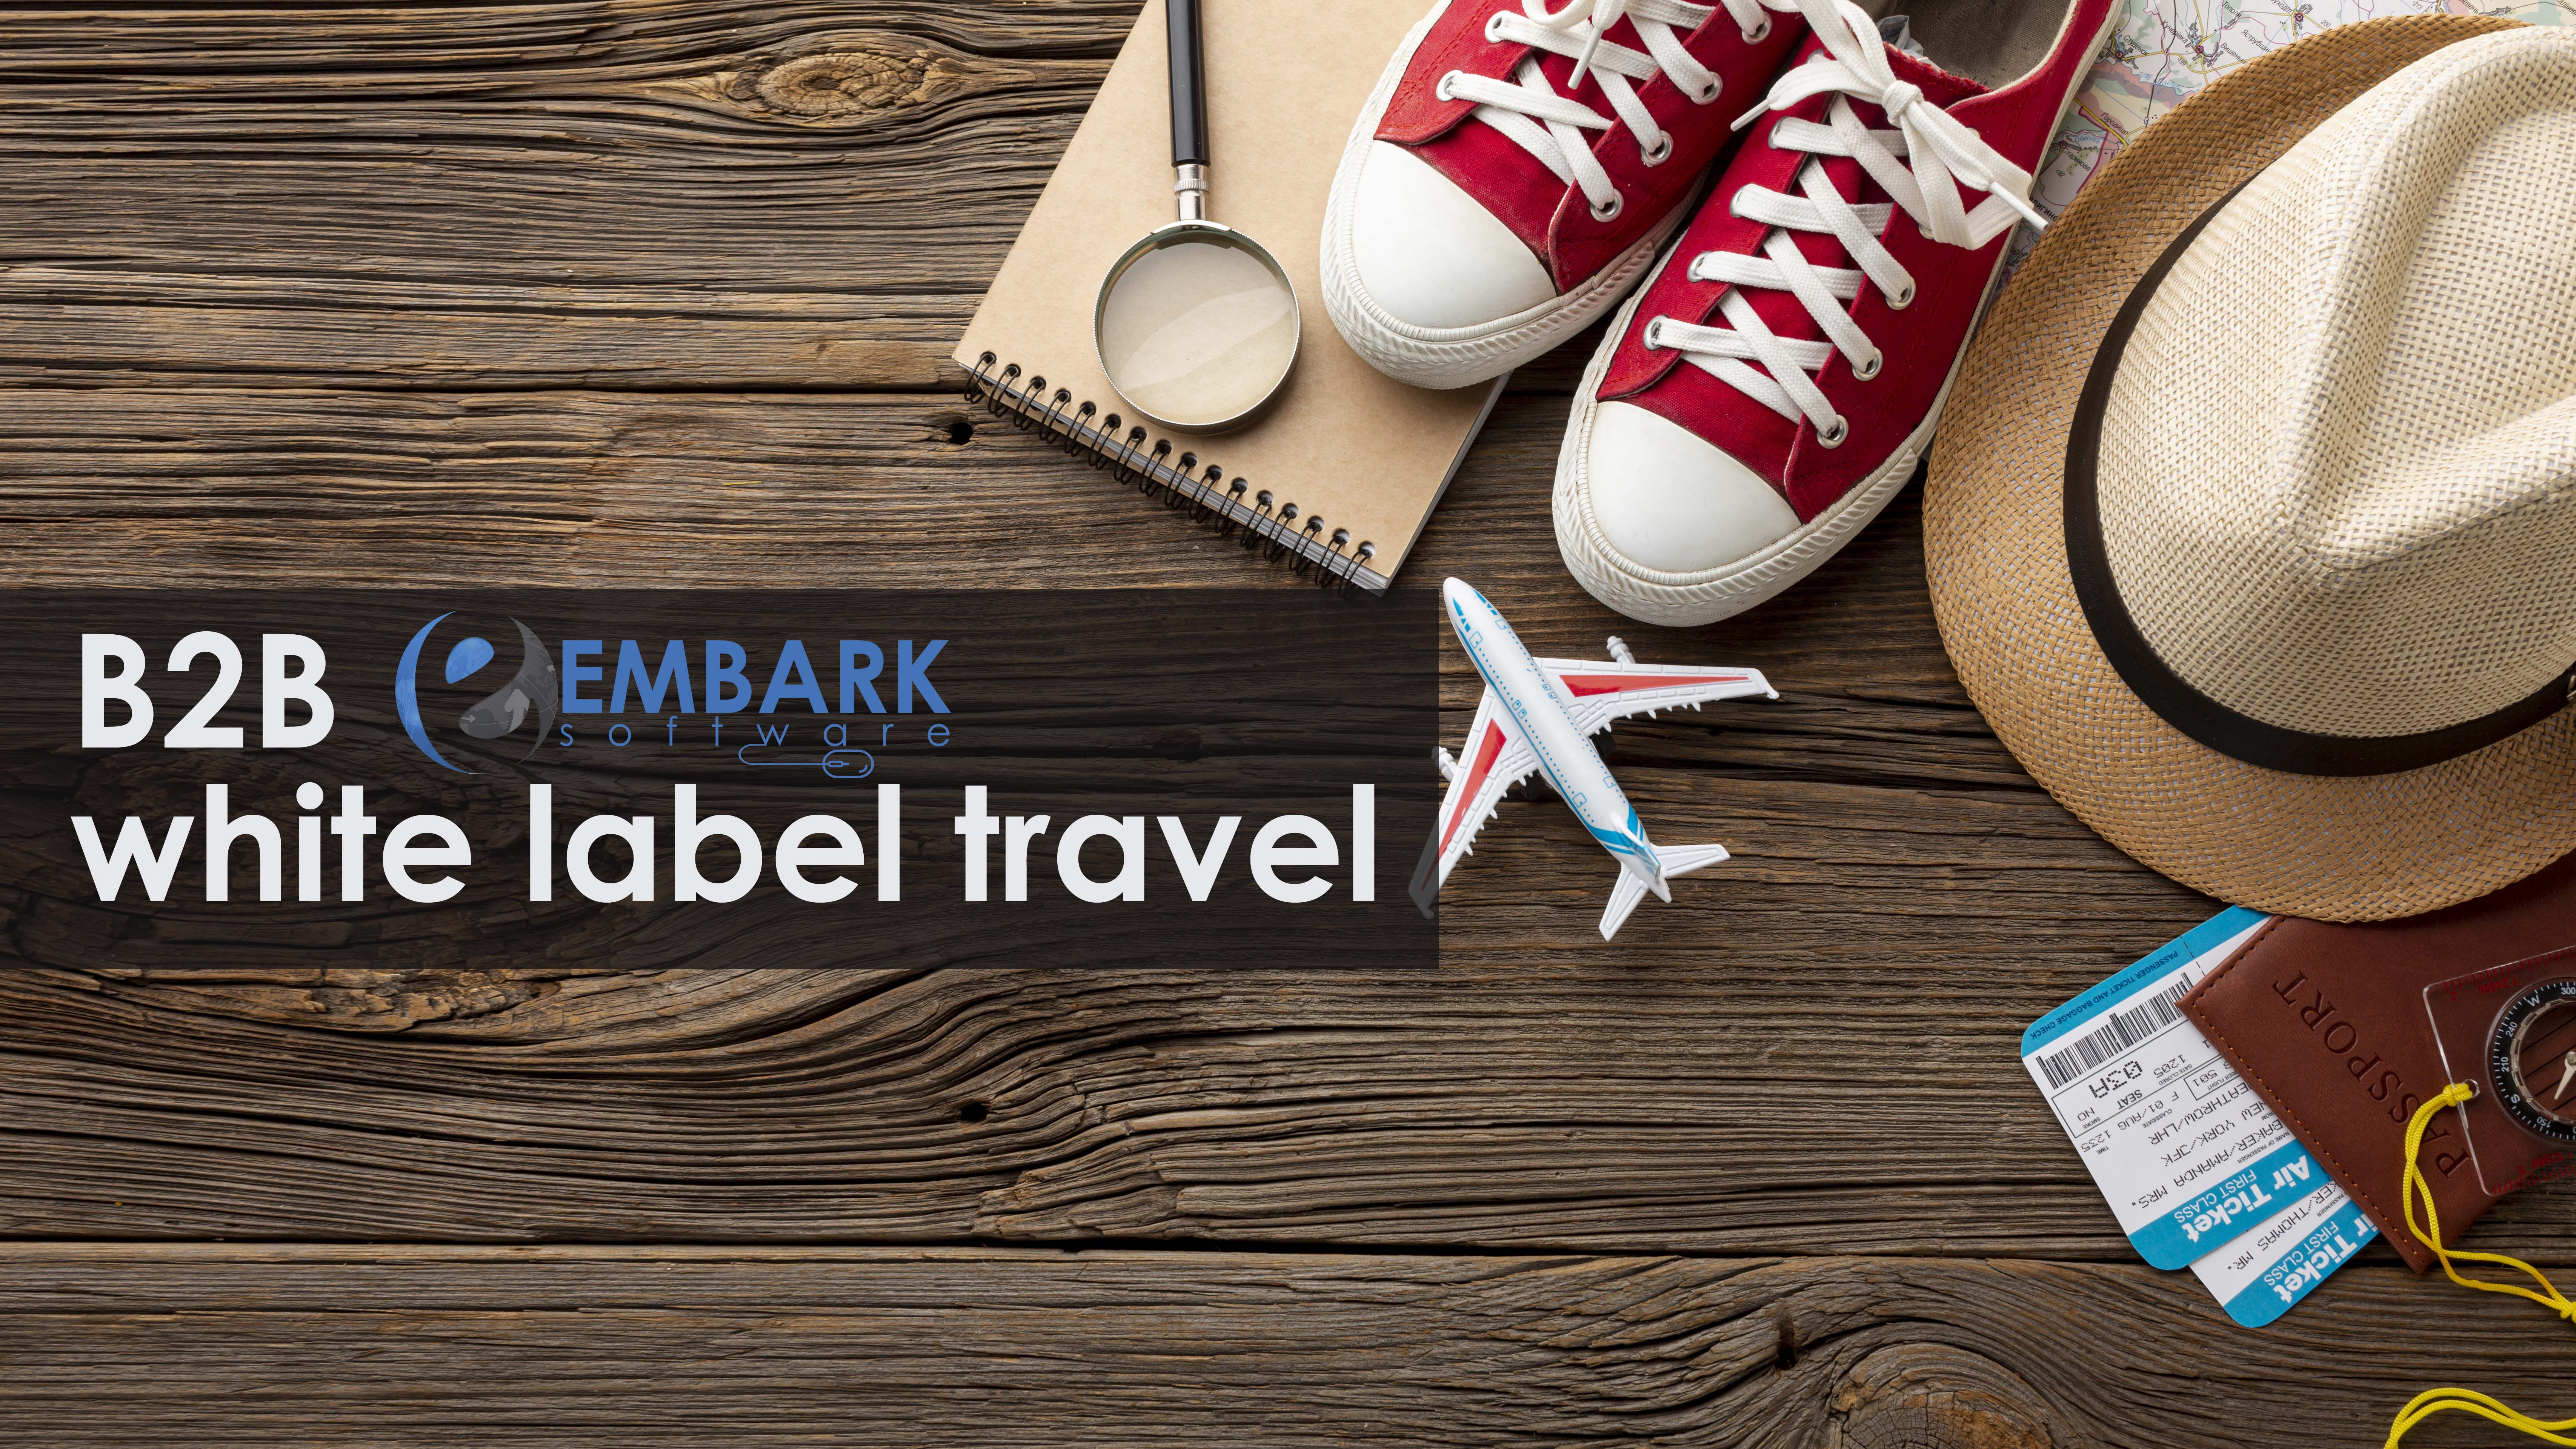 How B2B white label travel solution can add value to your business?